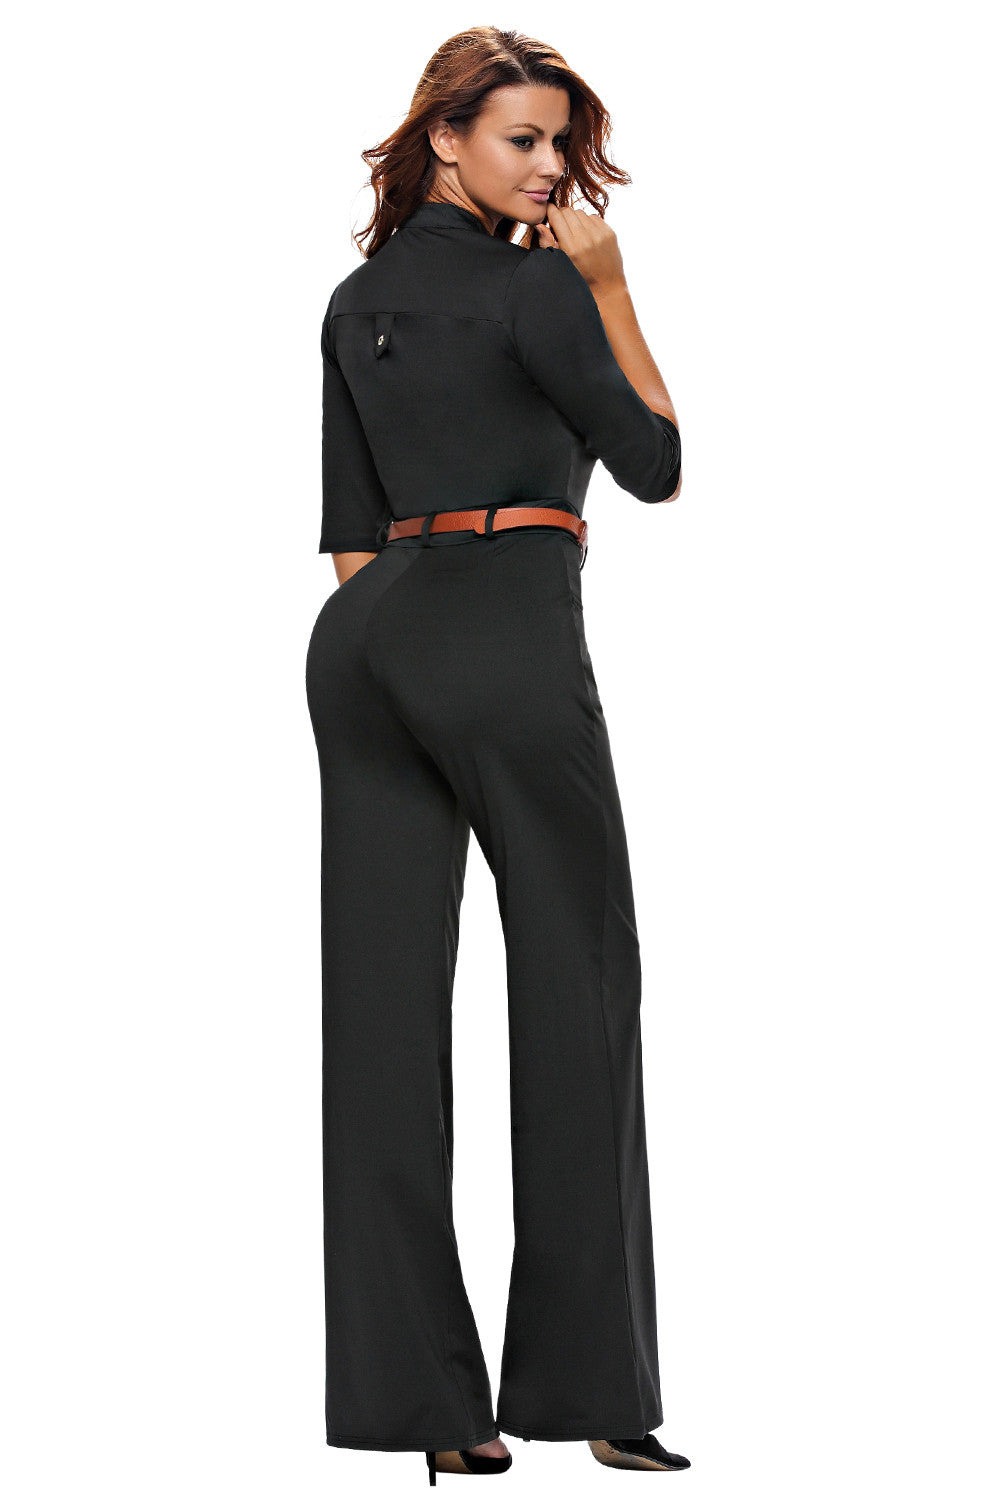 Half Sleeve Diva Fashion Wide Leg Jumpsuit 64205 - IBL Fashion - 7